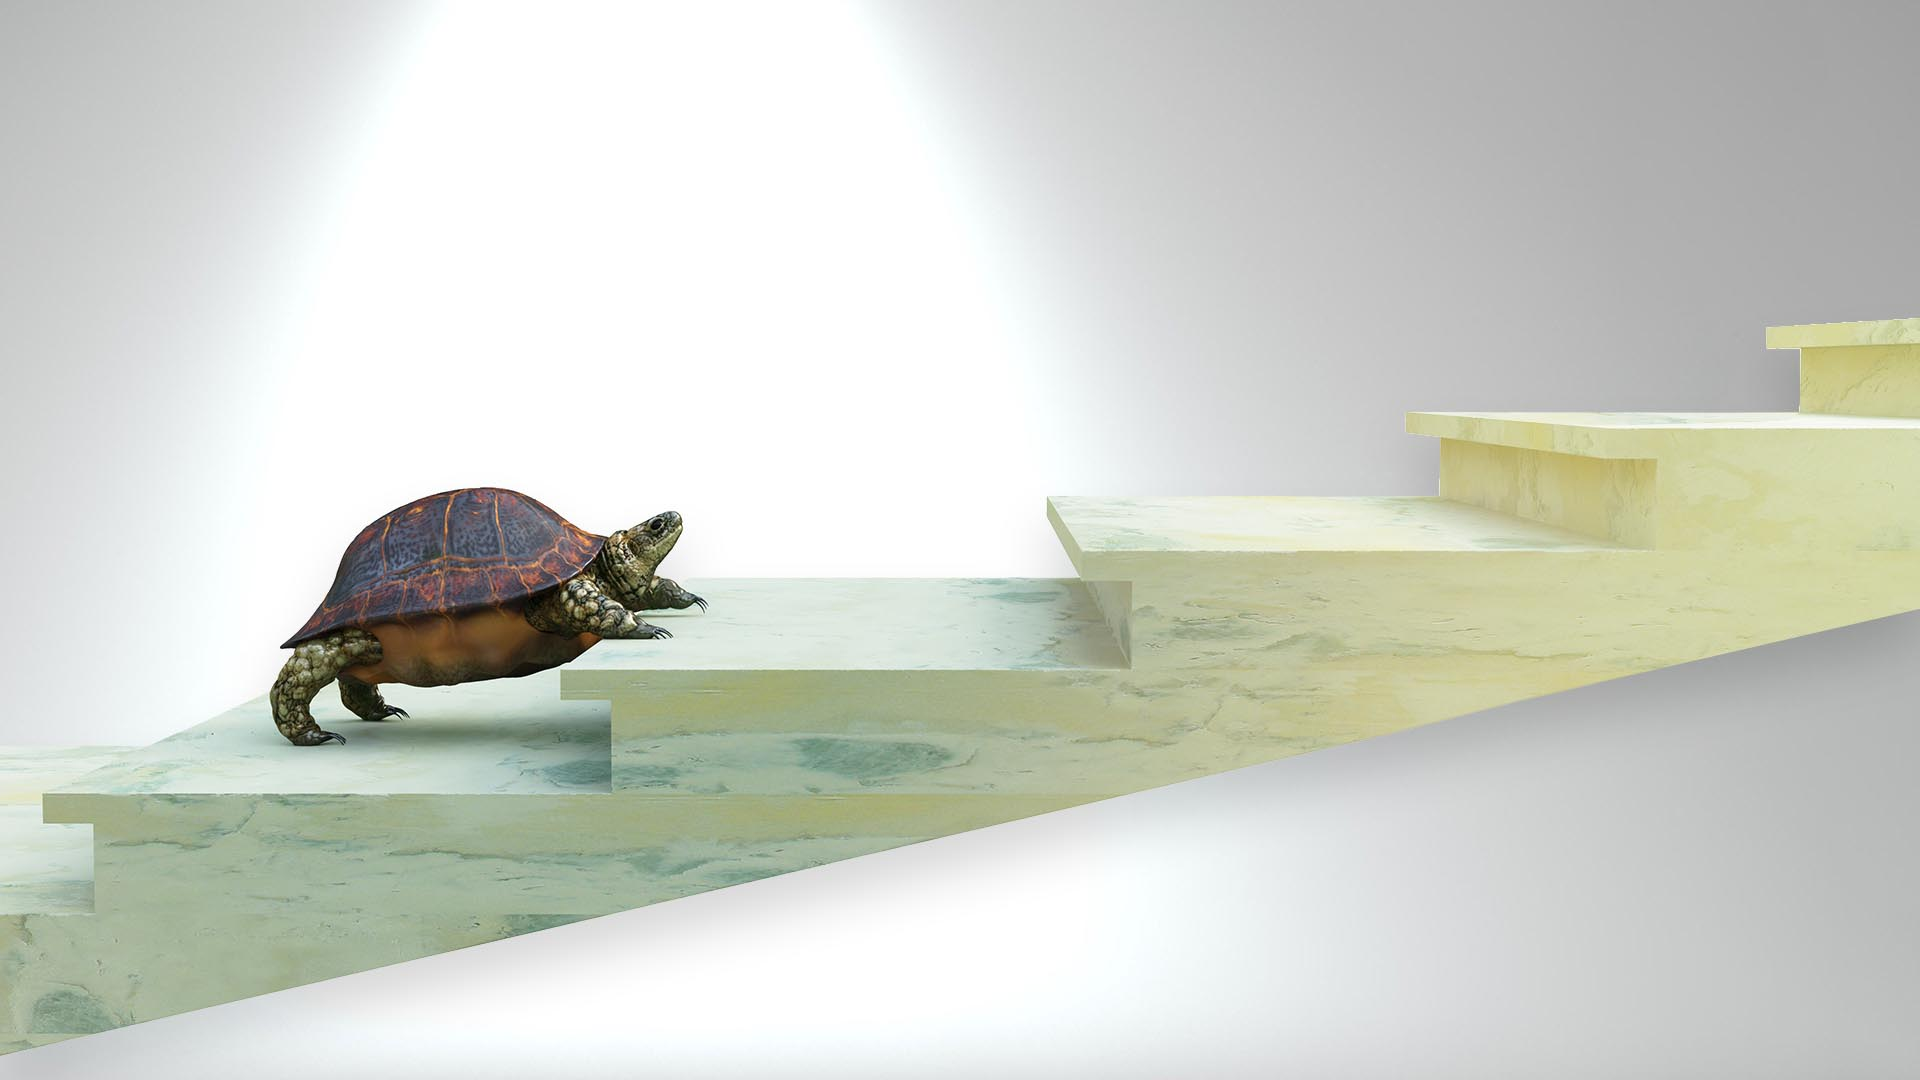 turtle climbing long stairway, representing how moving forward in legal questions can be tough